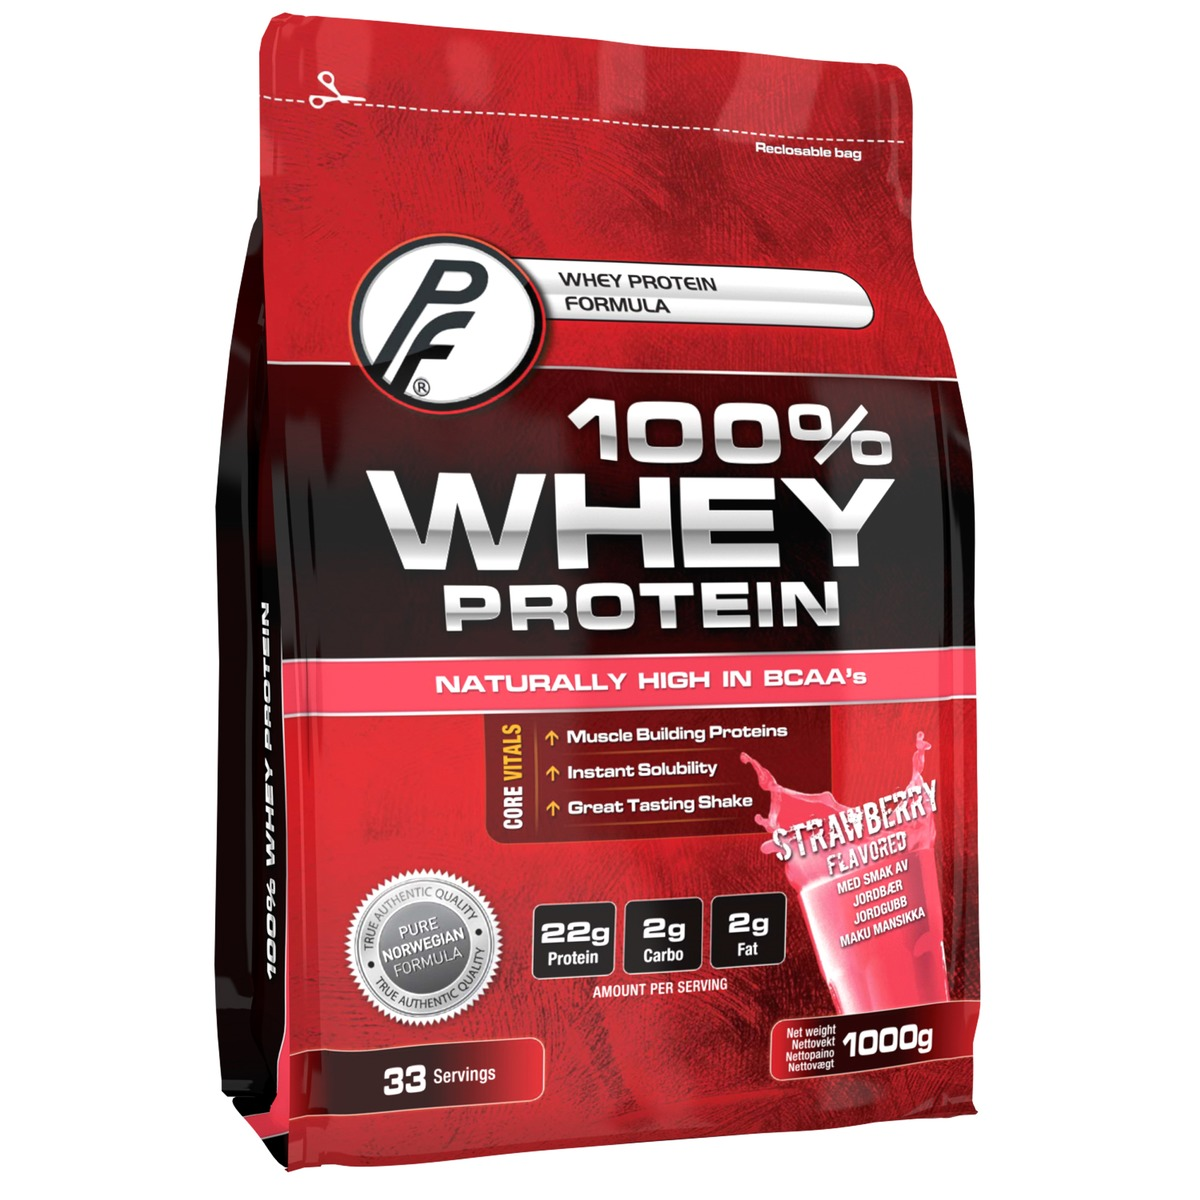 PF 100% Whey Protein